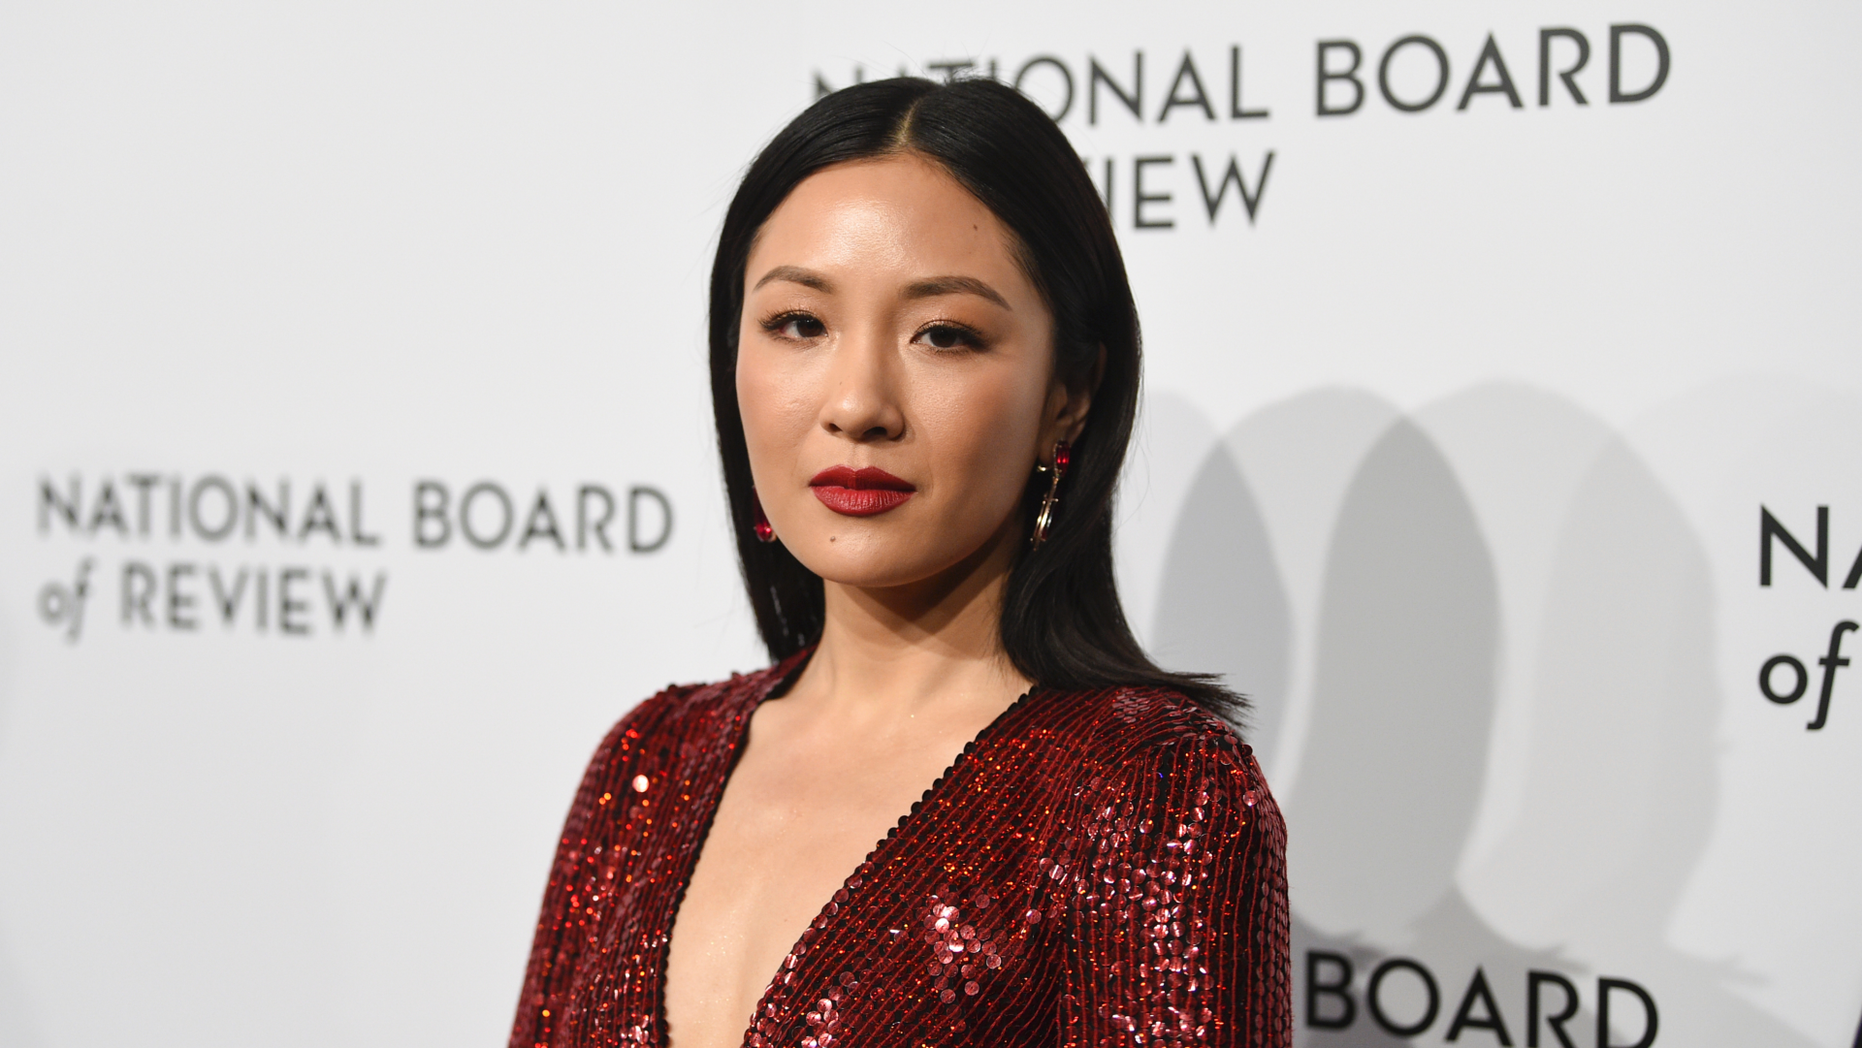 Constance Wu appeared to be unhappy her ABC sitcom